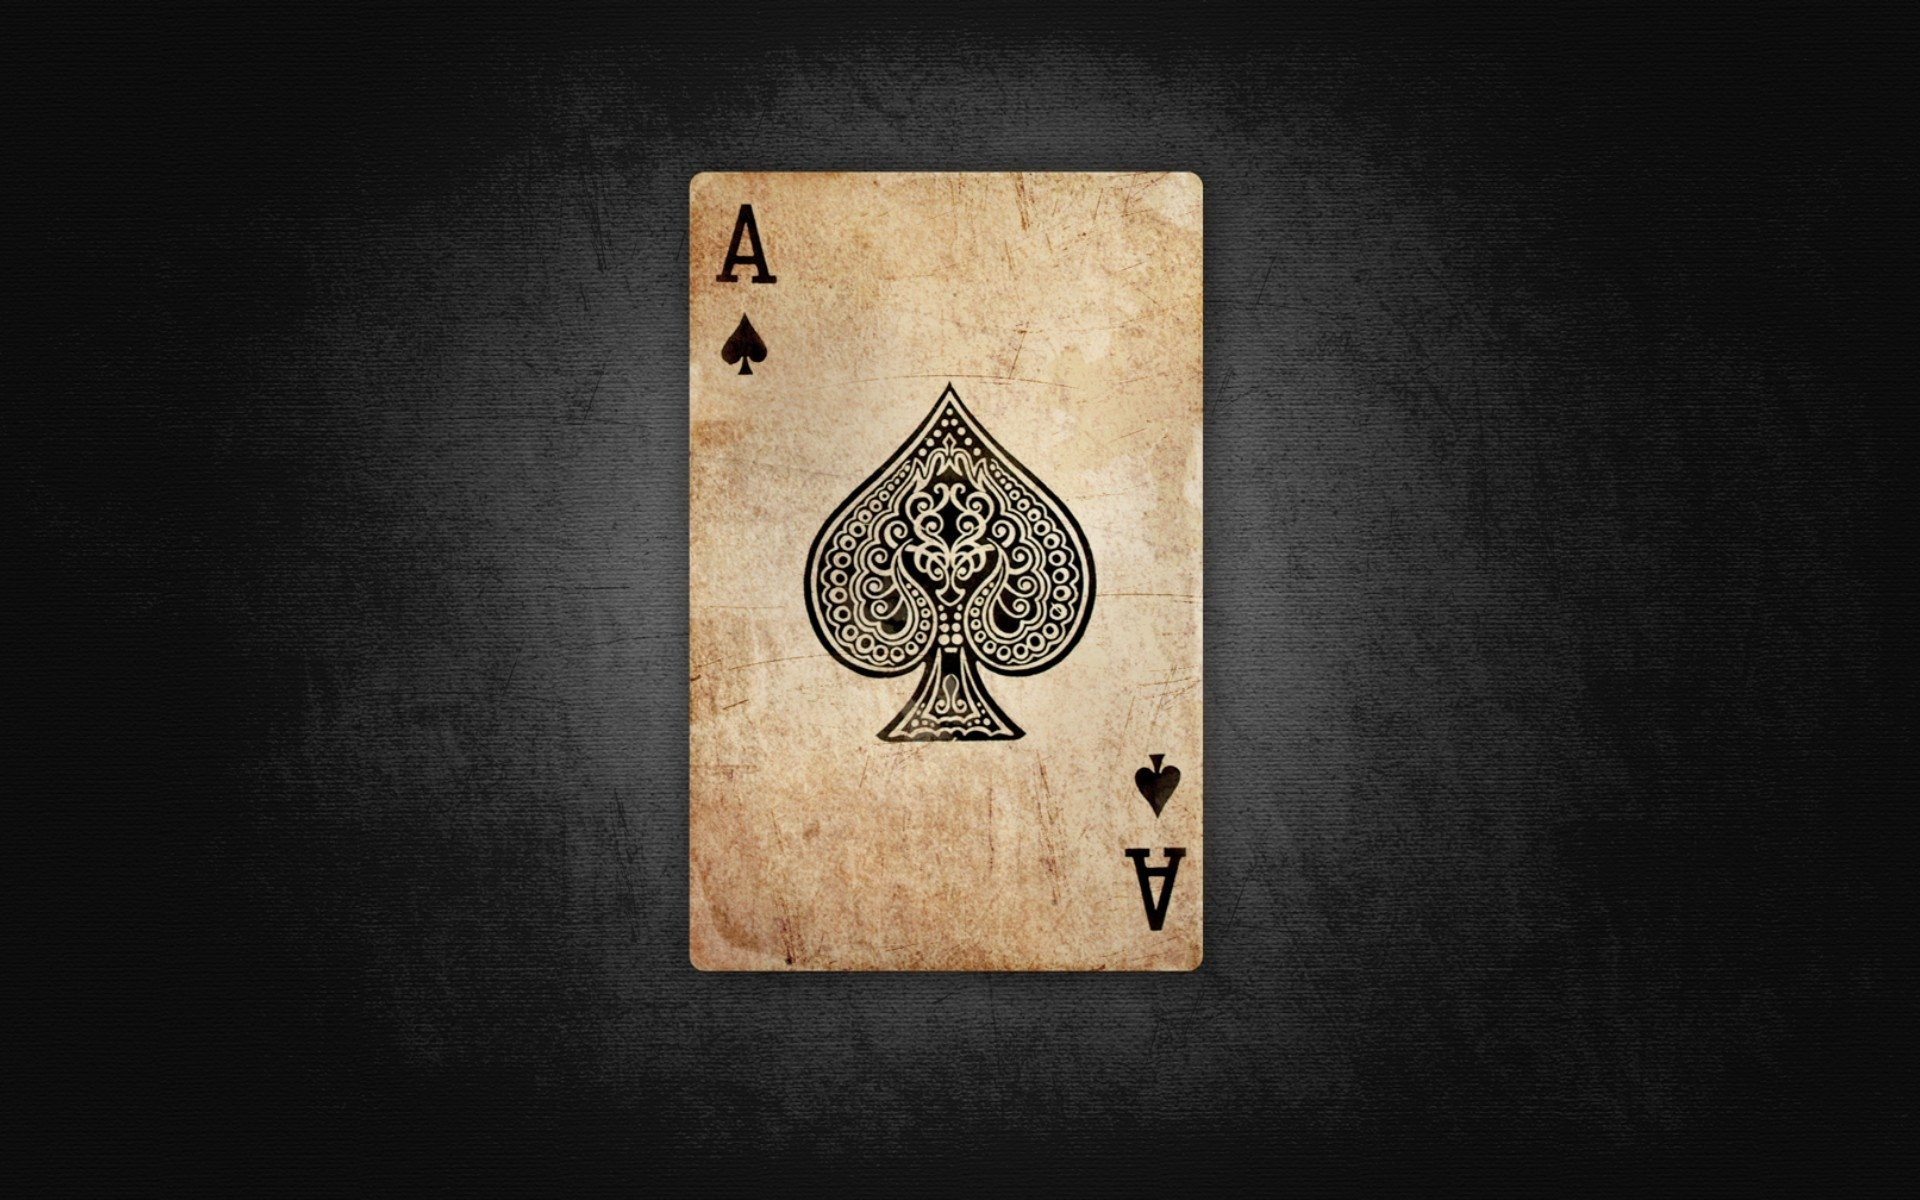 76 card hd wallpapers | backgrounds - wallpaper abyss